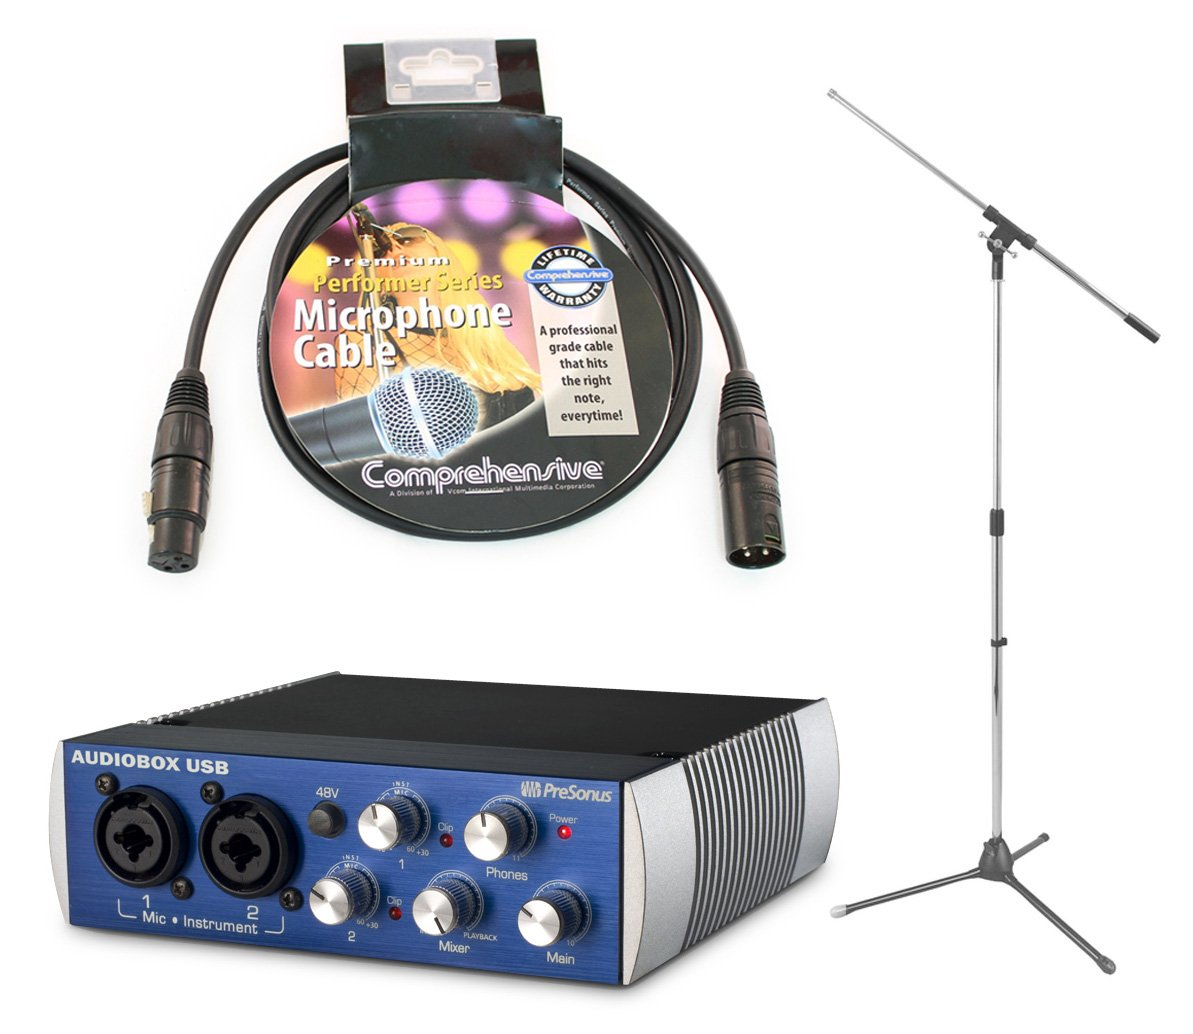 Presonus AudioBox USB Portable and Lightweight 2x2 USB Recording System with On Stage Boom Mic Stand and Comprehensive XLR to XLR 25' Premium Microphone Cable